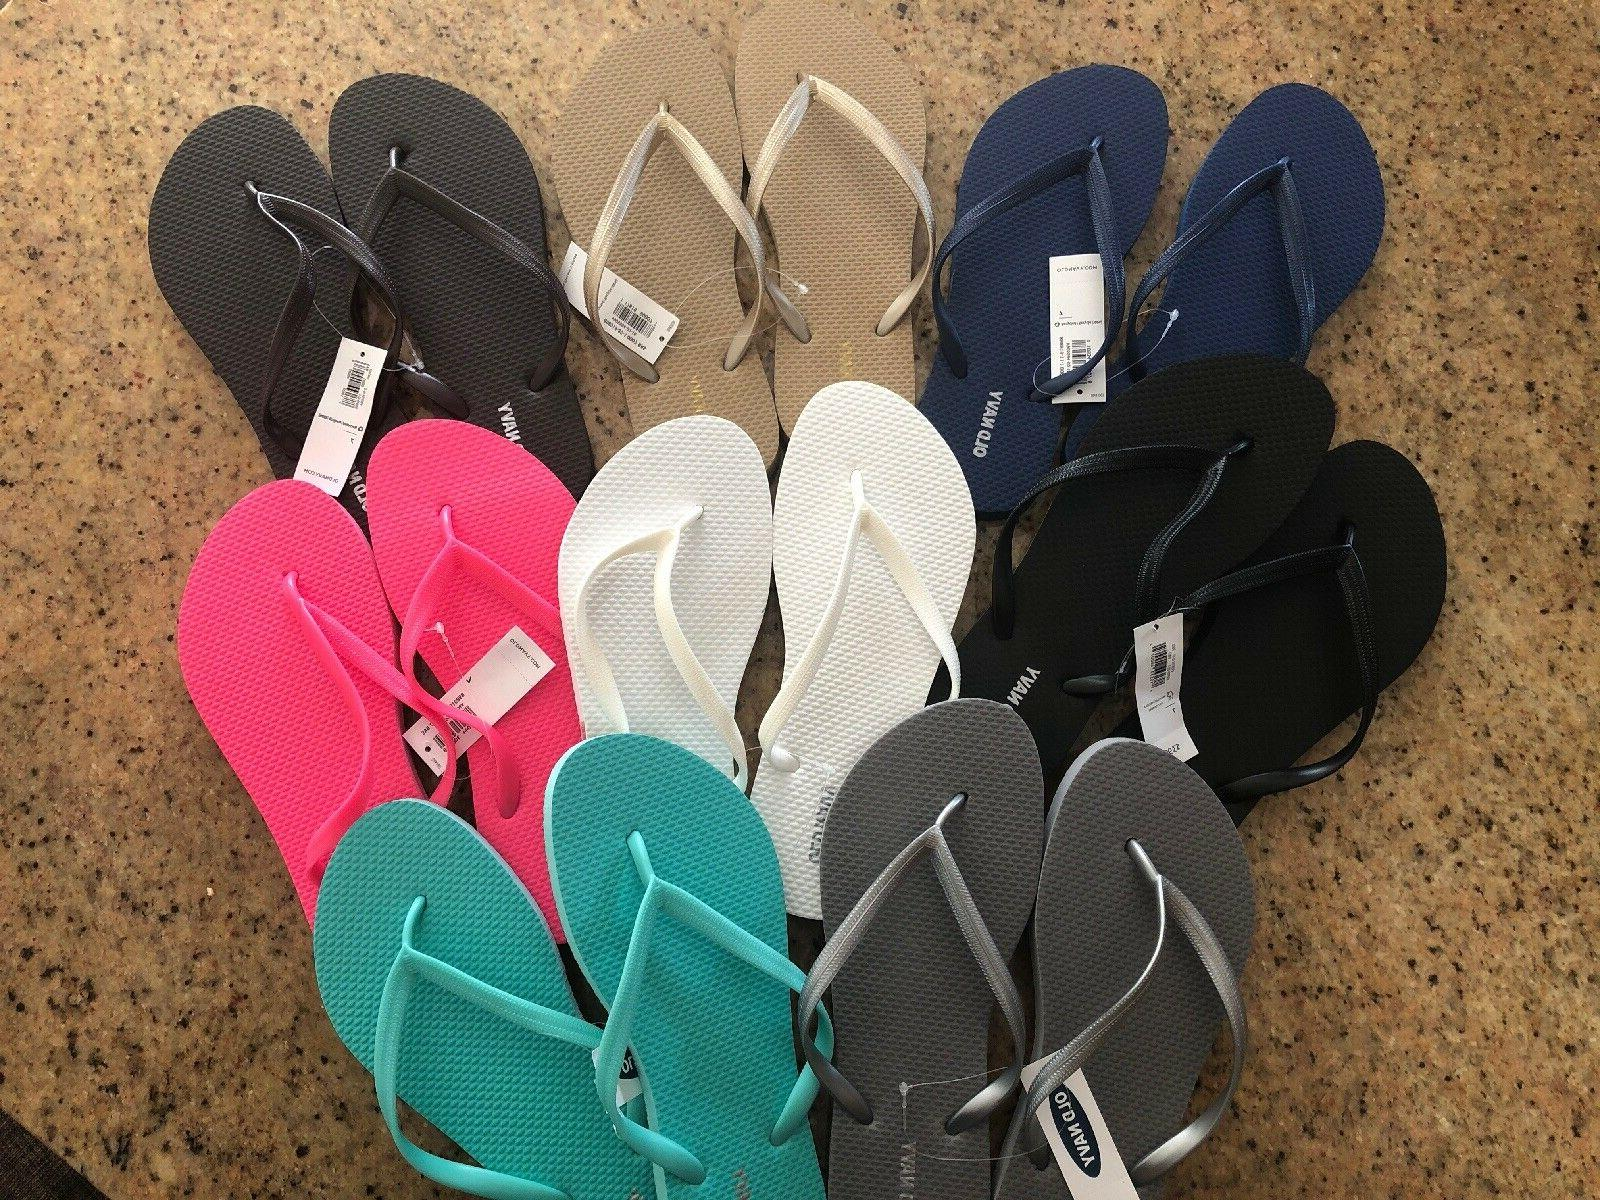 Old Womens Flip Flops Colors & Sizes Sizes 6,7,8